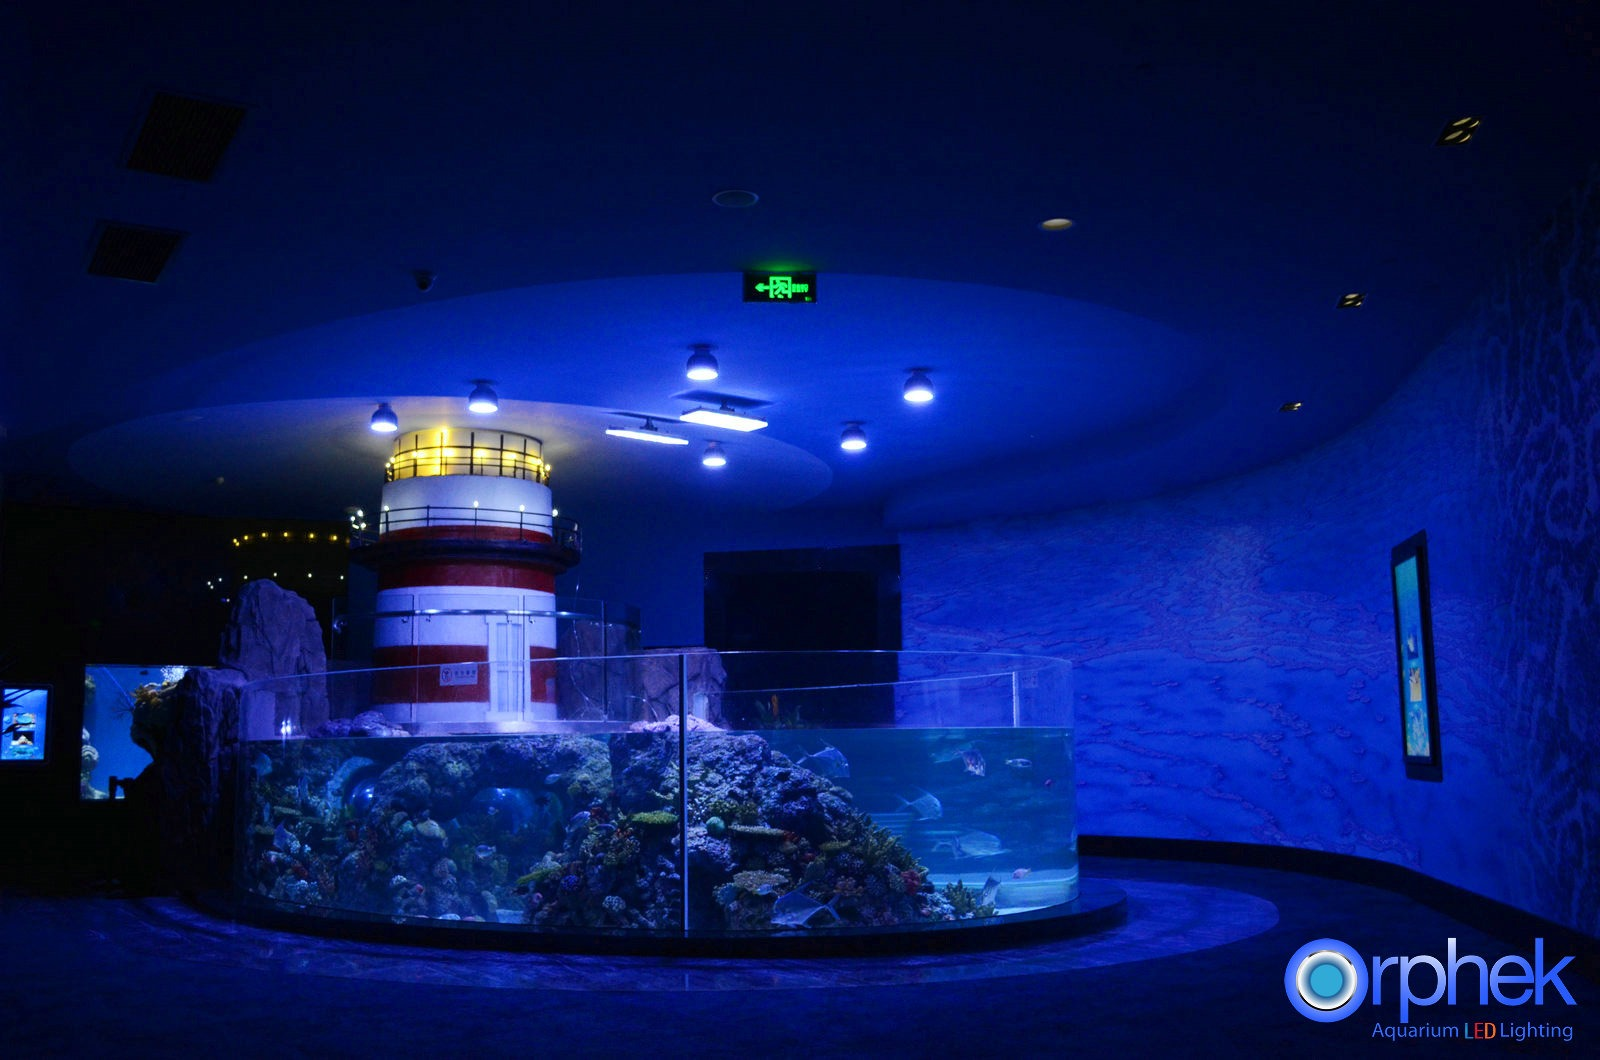 One Of The Largest Public Aquarium Projects In The World Goes Almost All Led With Orphek